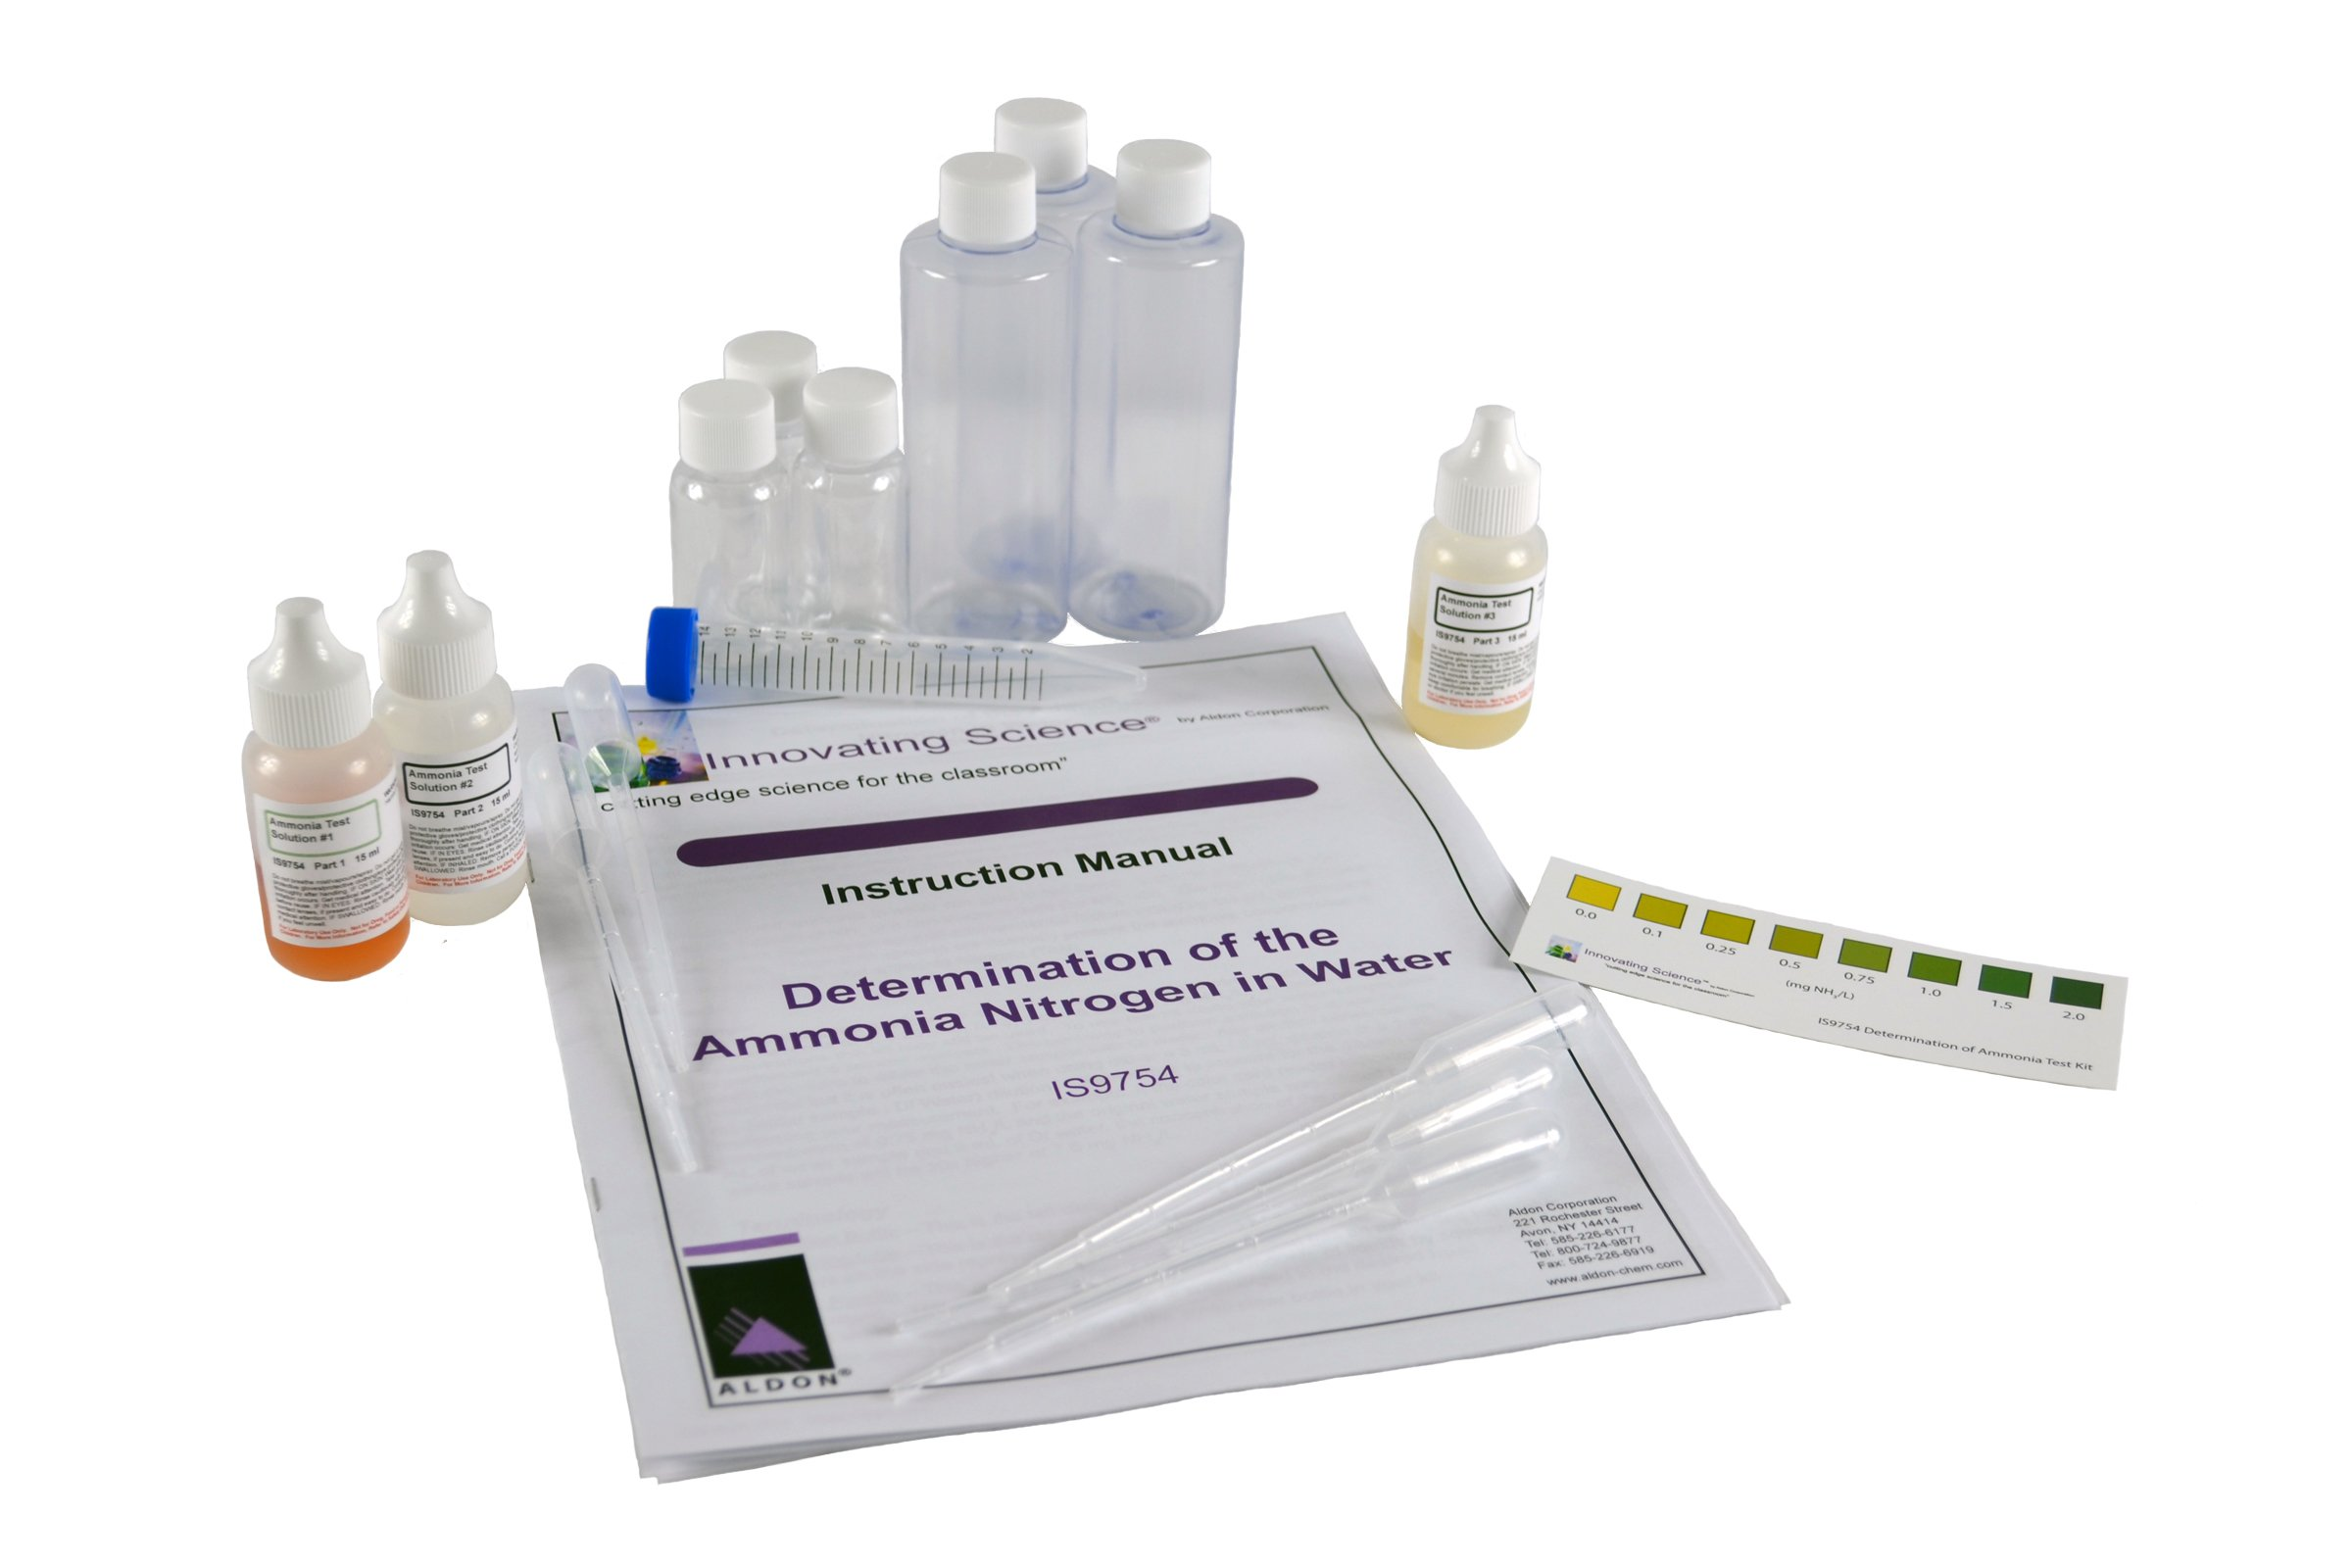 Portable Ammonium Nitrogen Concentration Water Testing Kit - Materials for 40 Tests